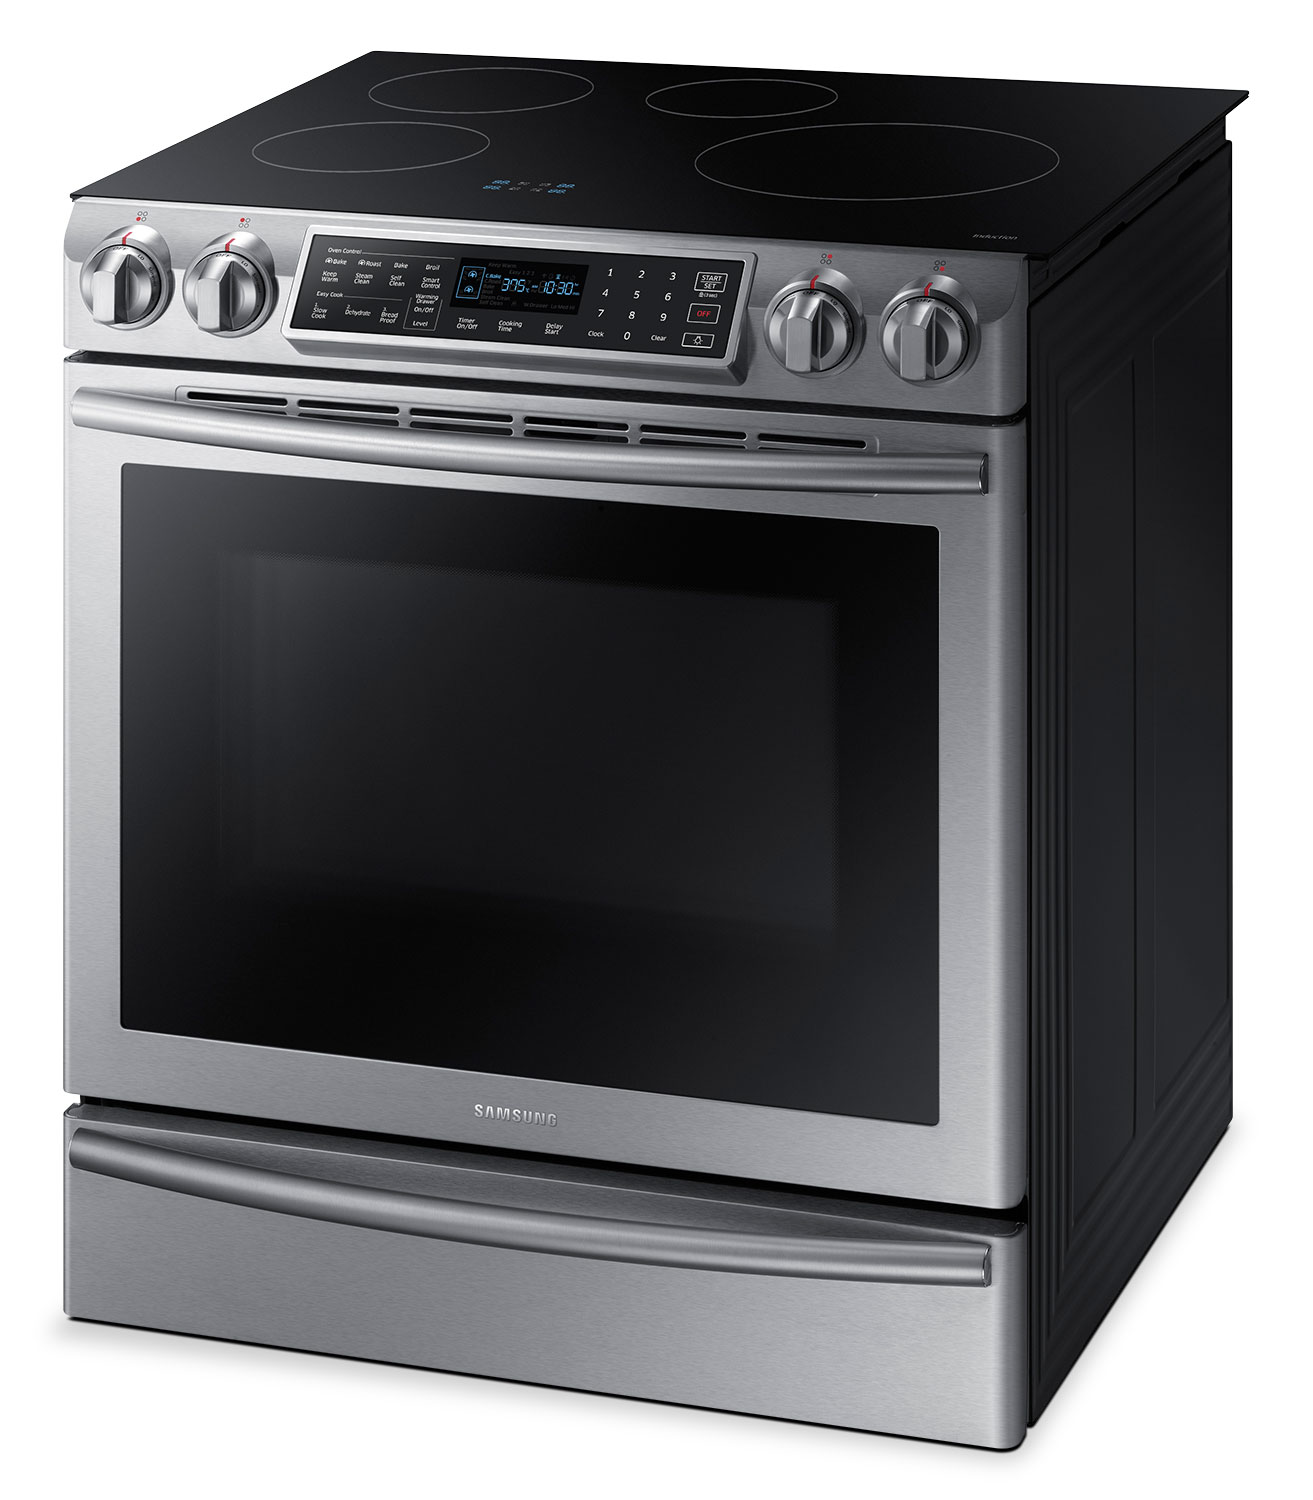 samsung induction range samsung 5 8 cu ft slide in induction range ne58k9560ws ac the brick